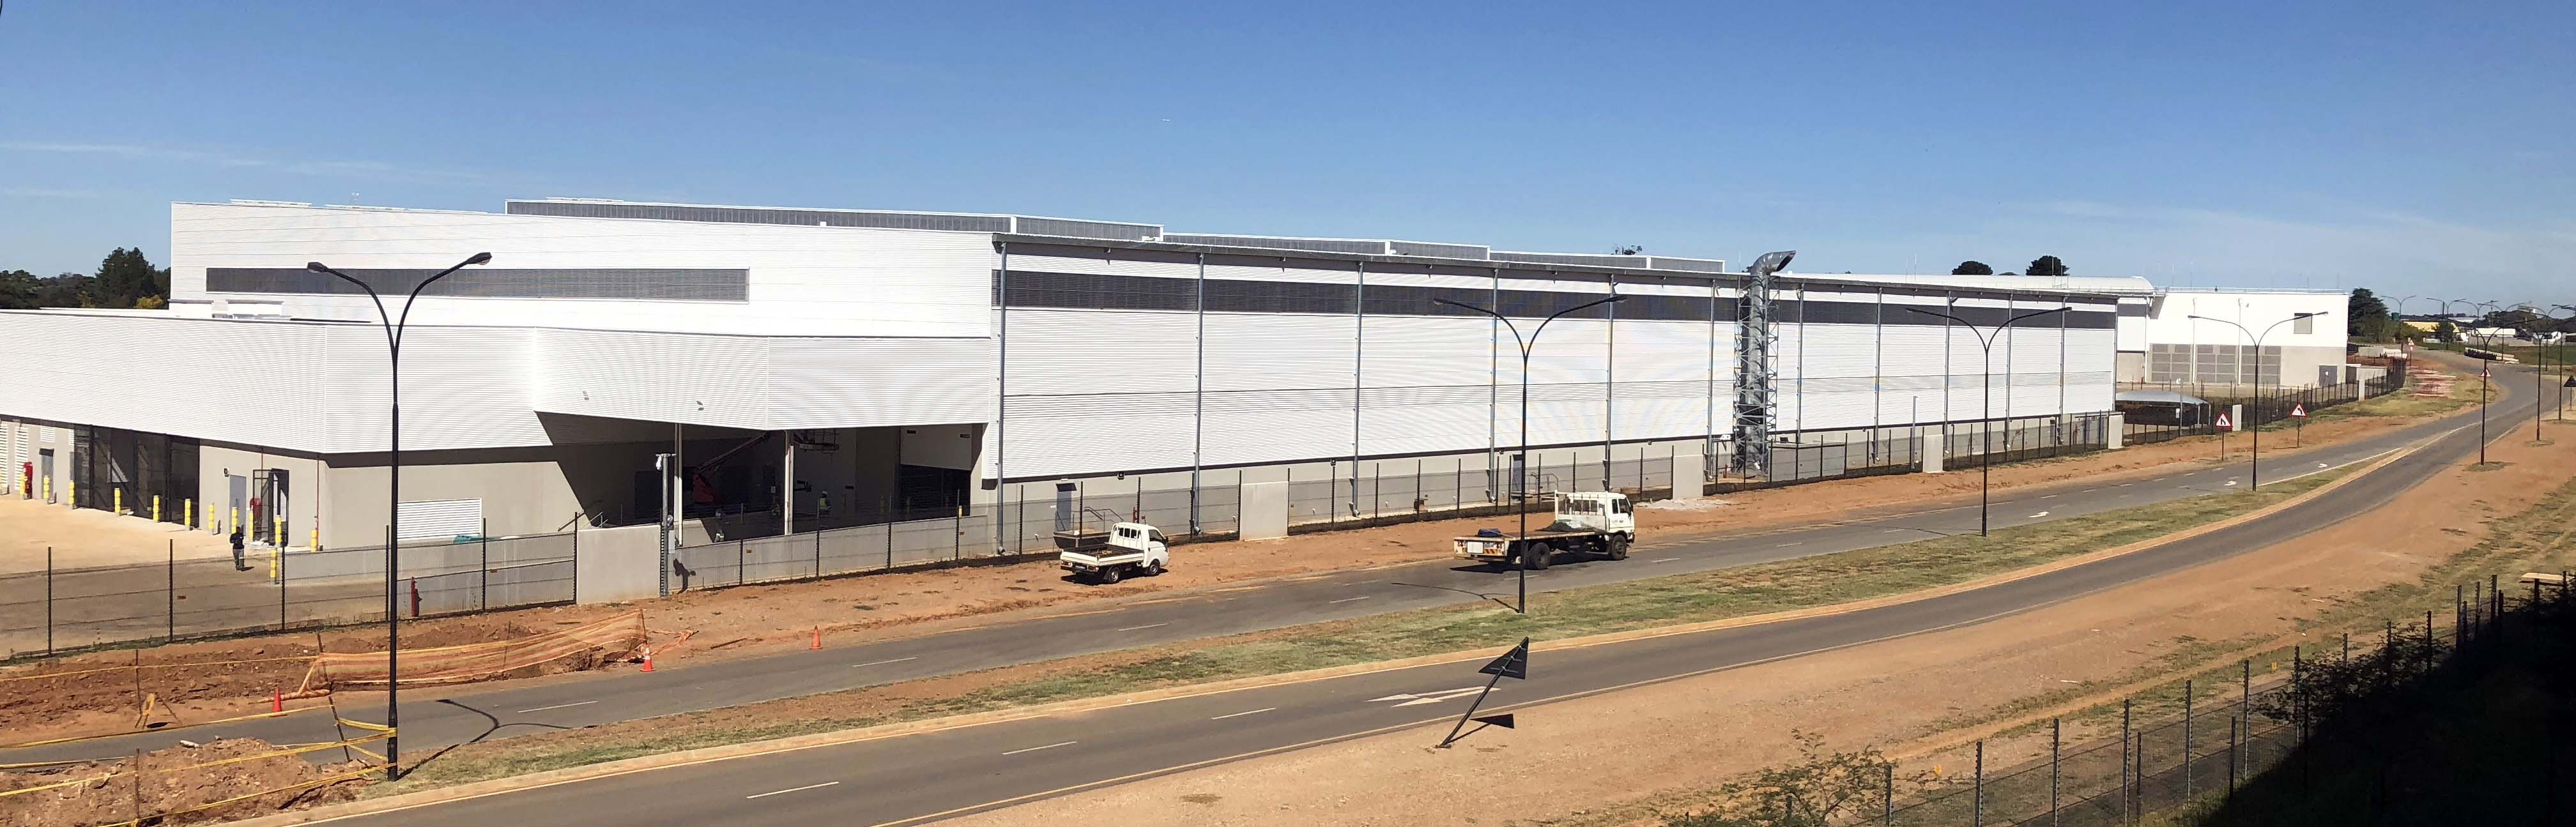 125 tons of cladding cover this warehouse